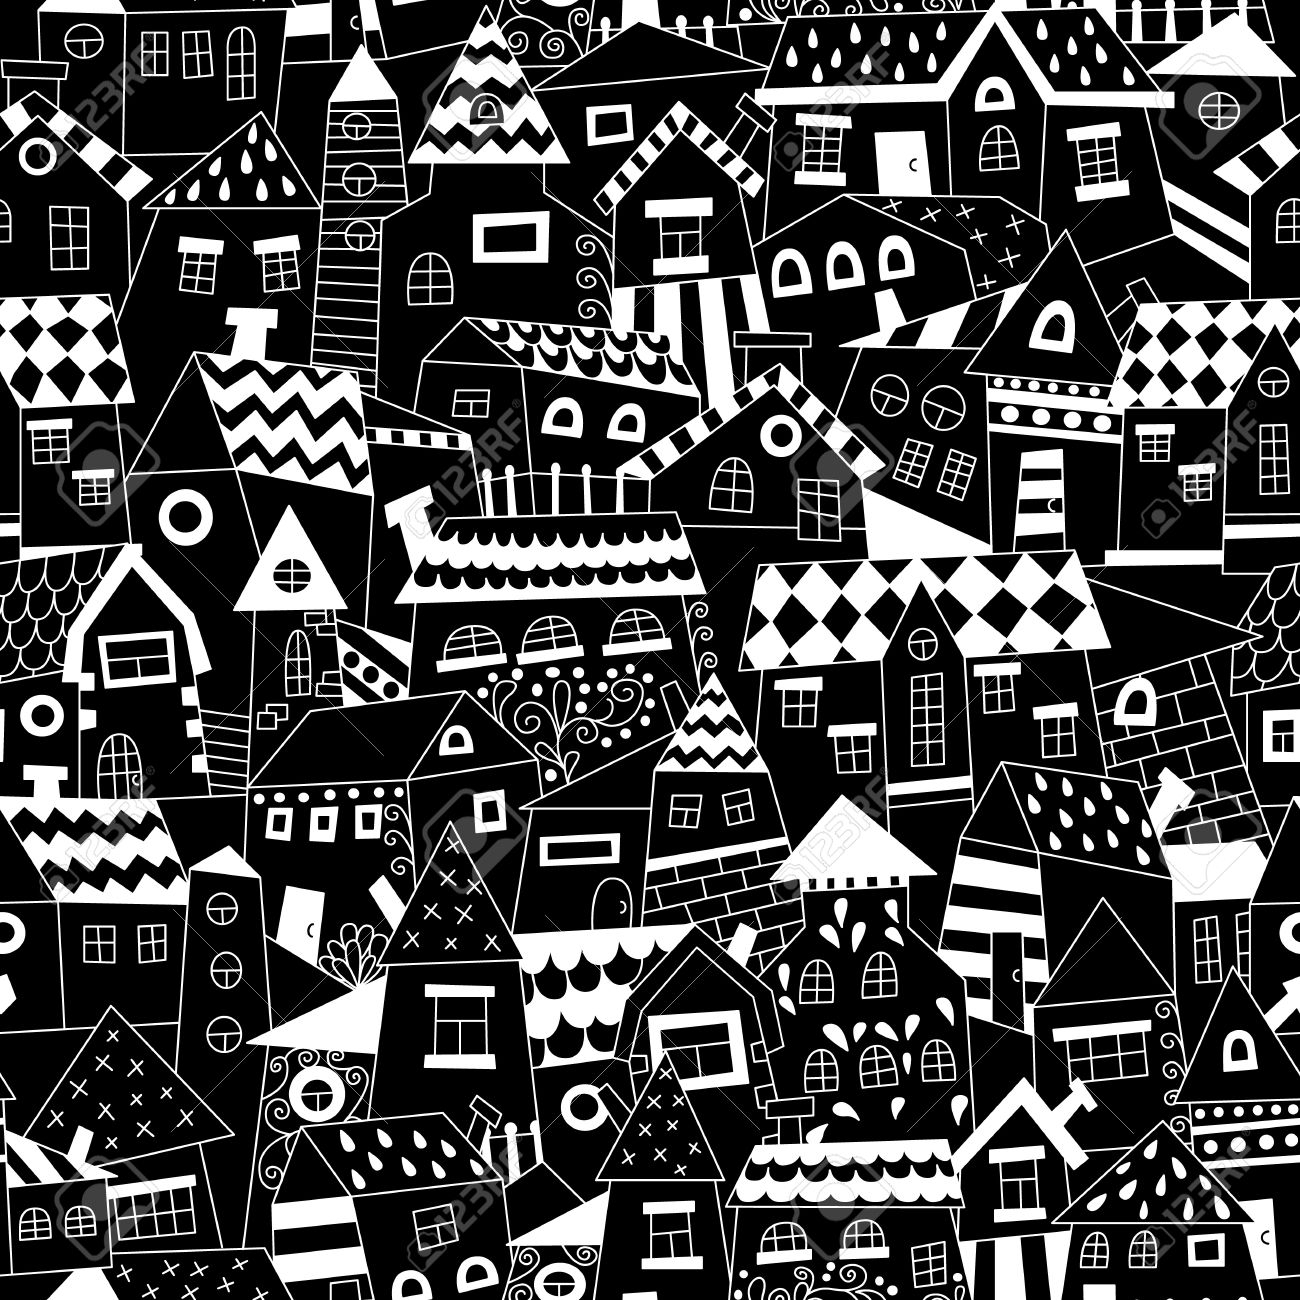 doodle hand drawn town seamless pattern black and white abstract wallpaper vector illustration for y